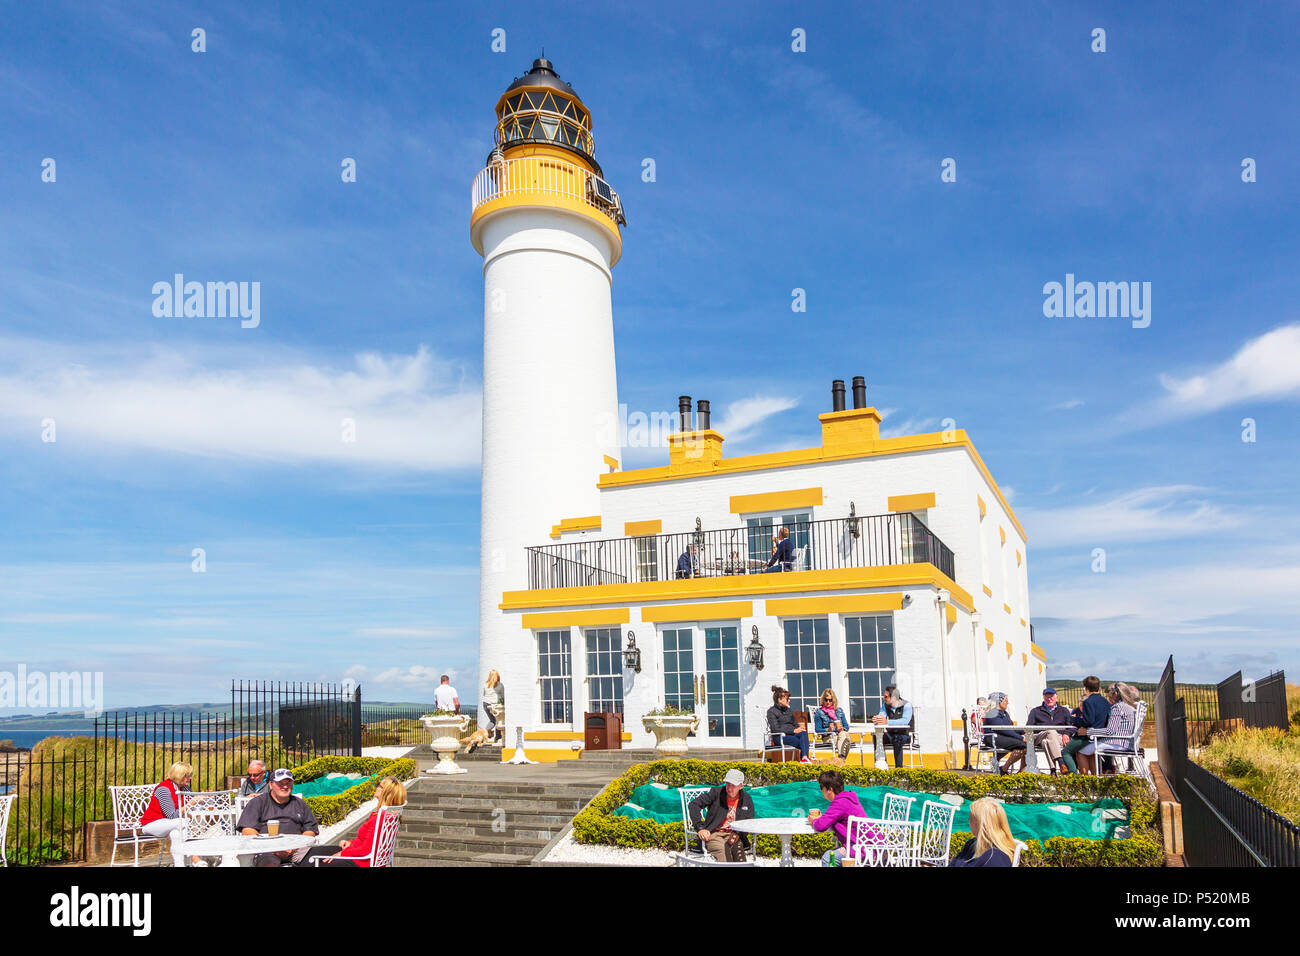 Restyled and renovated Turnberry lighthouse, part of Trump Turnberry Hotel and Golf complex, now used as a cafe and halfway house for the Ailsa course - Stock Image